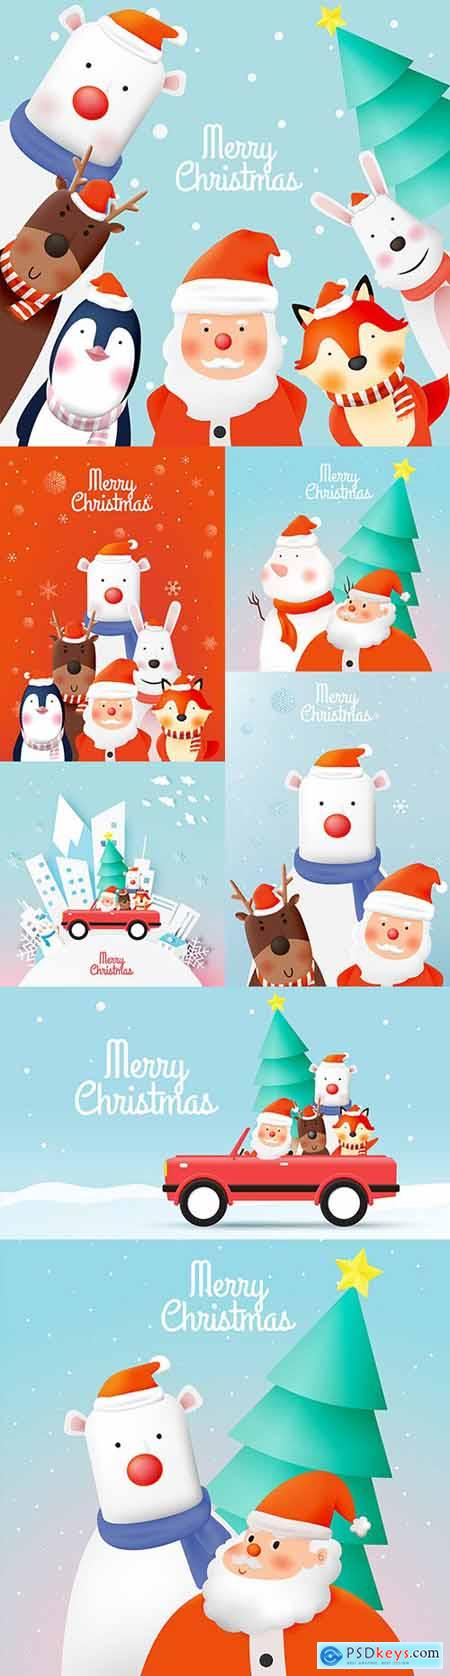 Santa Claus and friends animal cute New Year characters